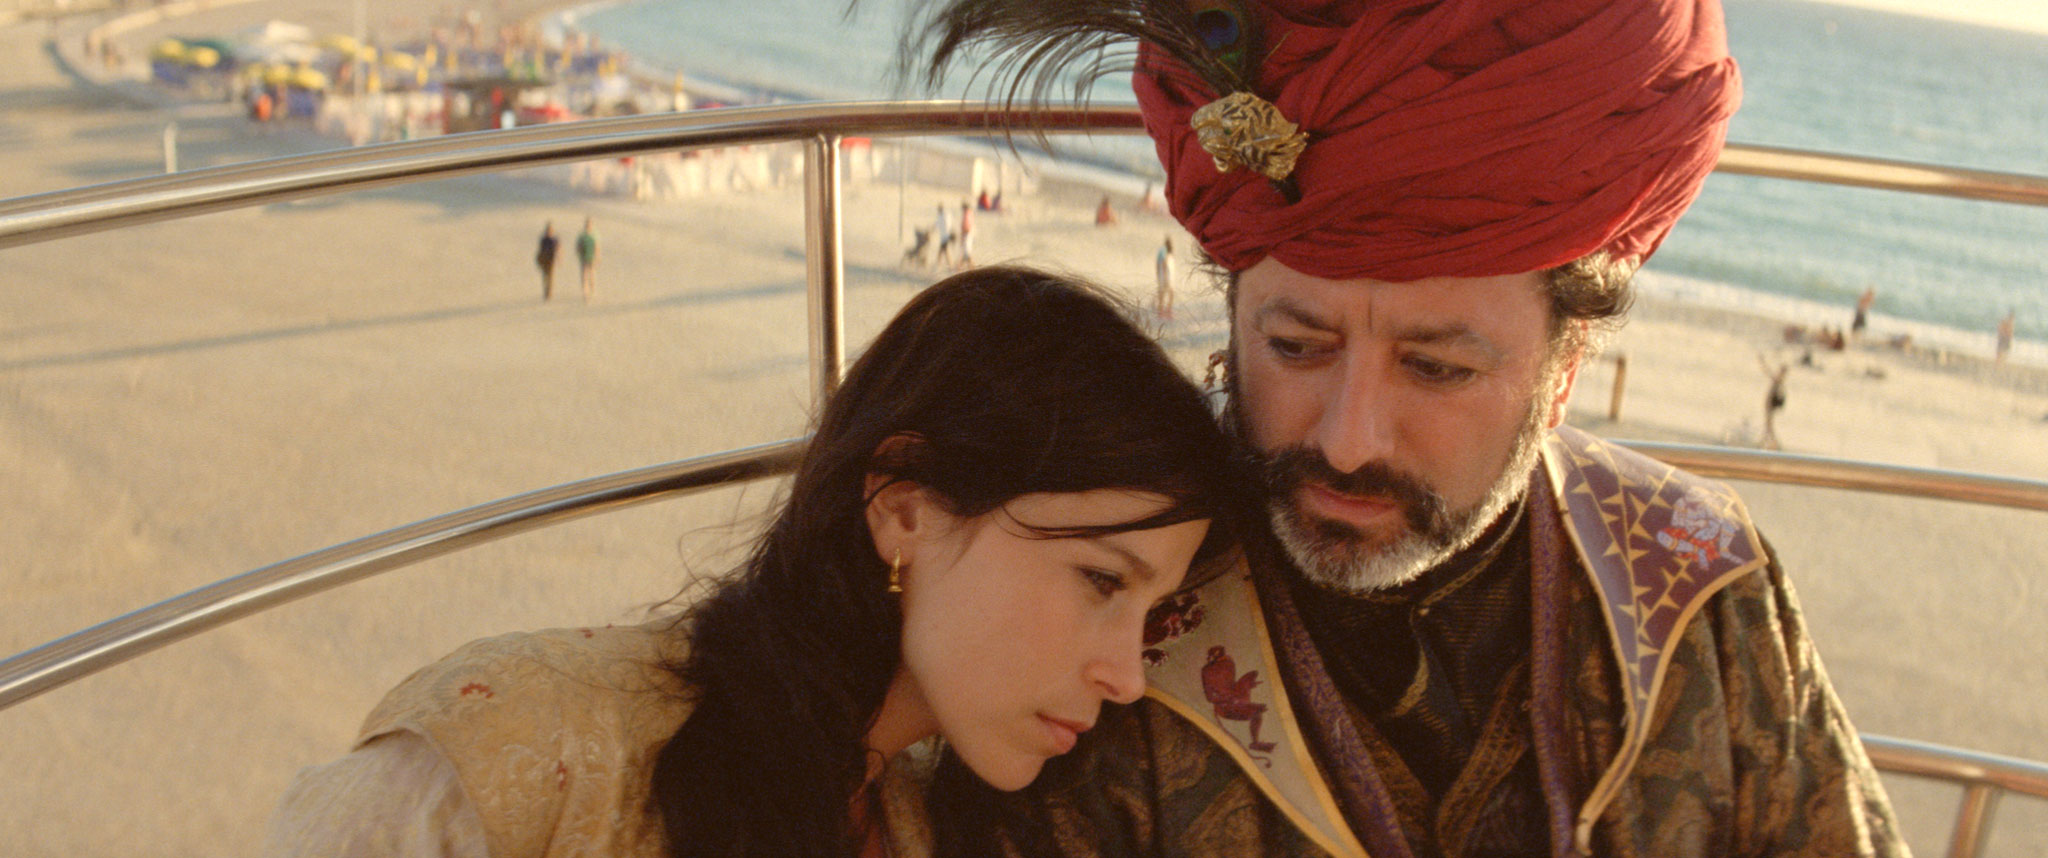 Crista Alfaiate and  Américo Silva ride a Ferris wheel  in   Arabian Nights Volume 3: The Enchanted One  . Image courtesy of the Glasgow Film Festival.